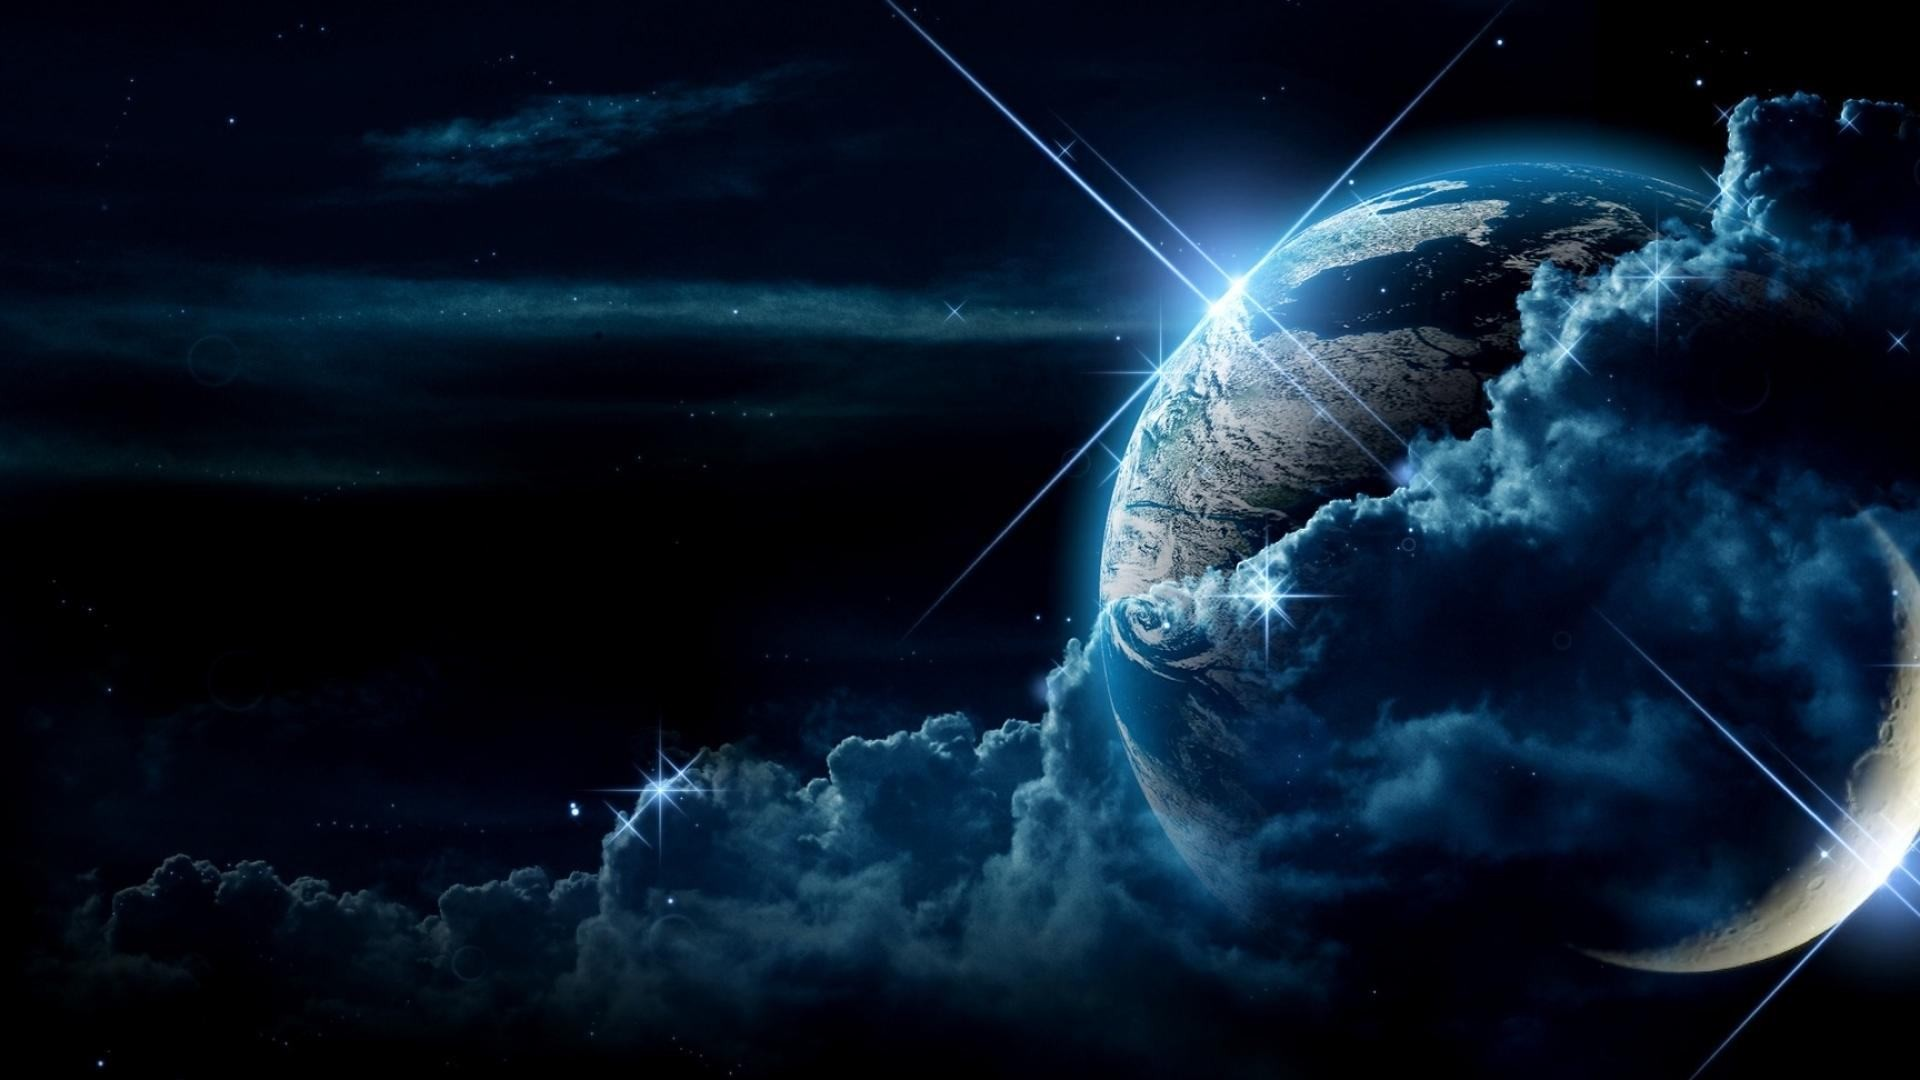 Wallpapers Backgrounds – Space Earth Cool Pictures Background .